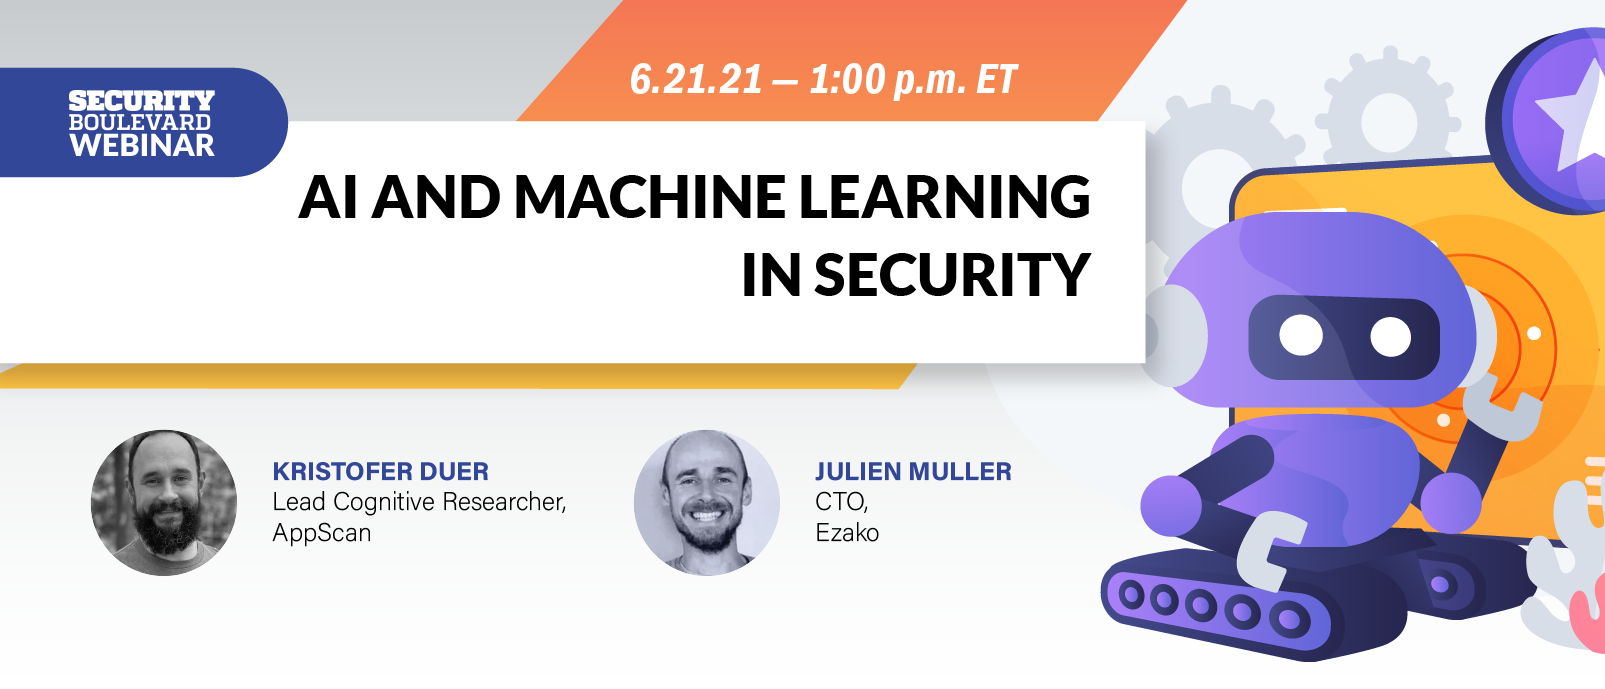 AI and Machine Learning in Security